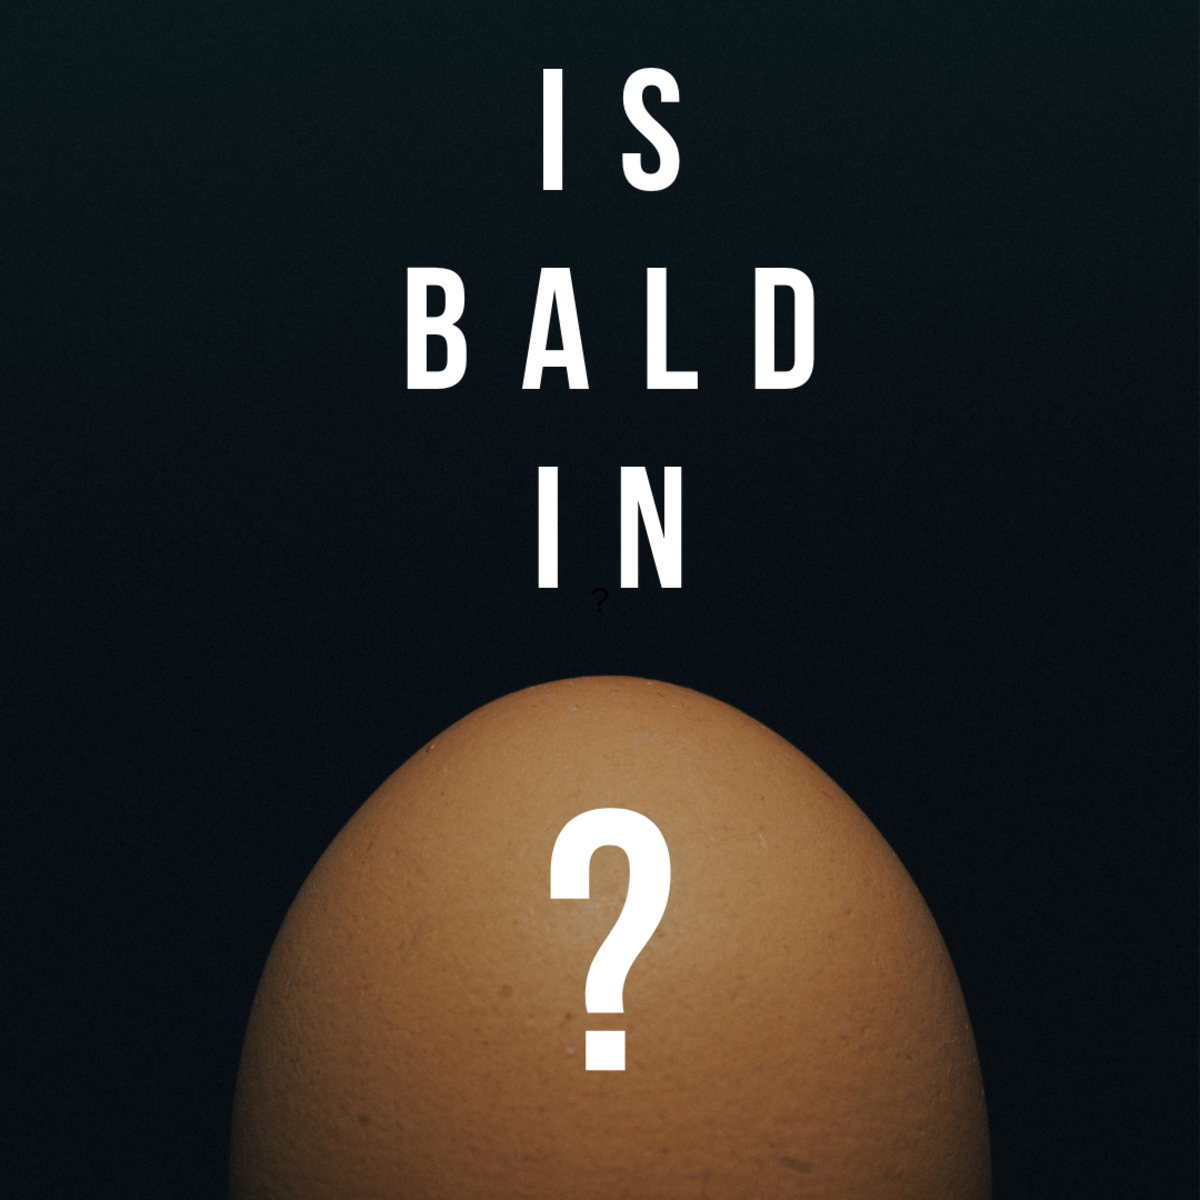 Does baldness make the 'cut'? Let's find out!